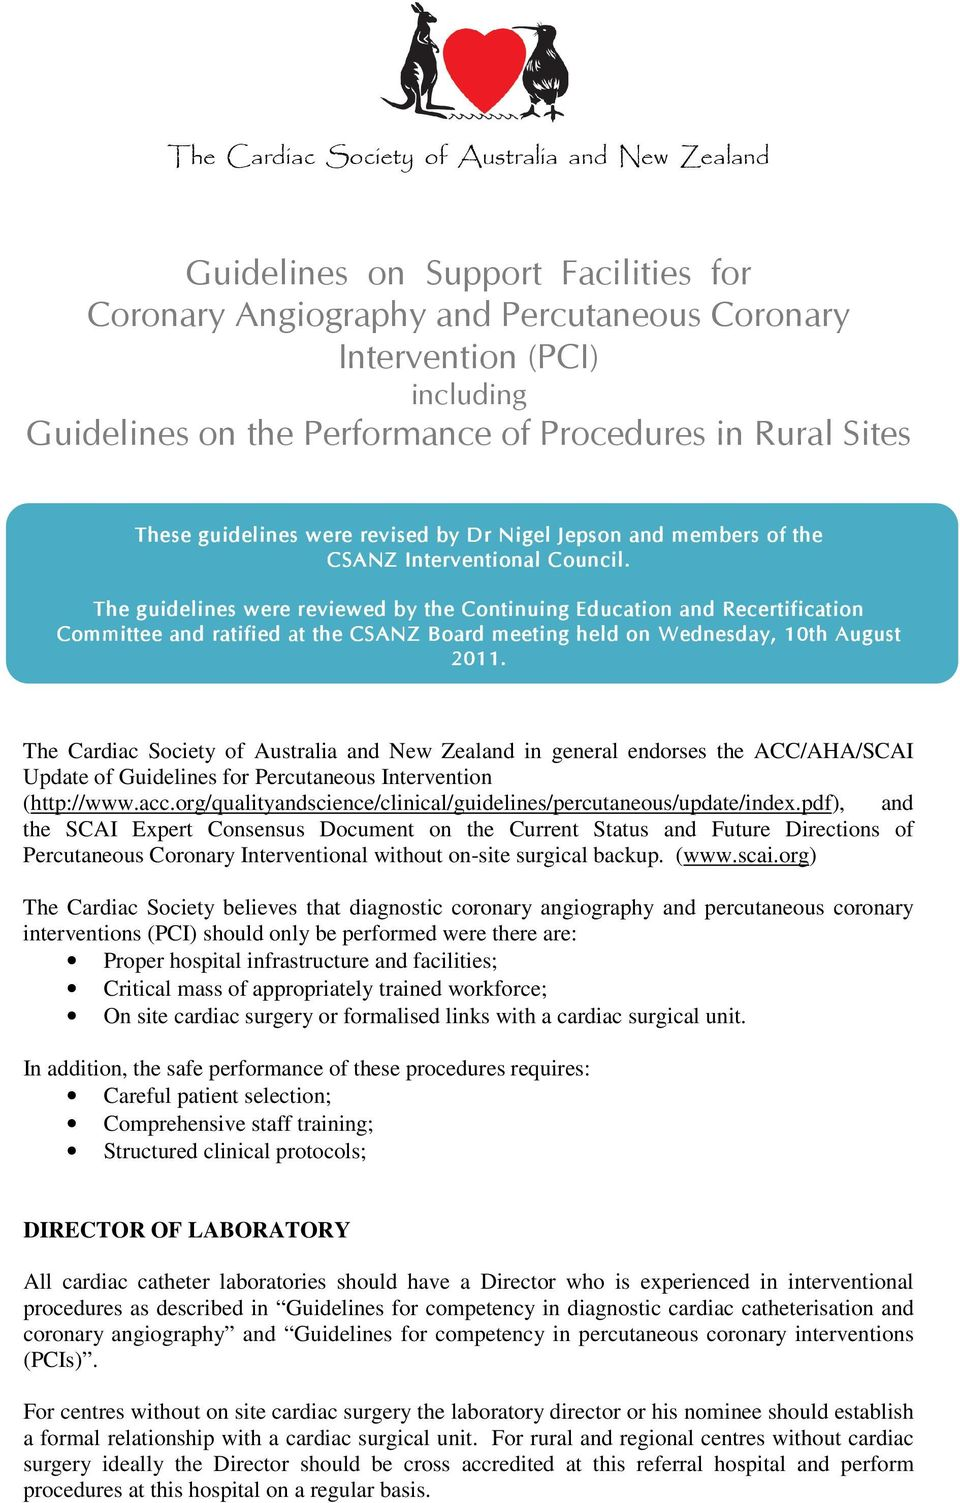 The guidelines were reviewed by the Continuing Education and Recertification Committee and ratified at the CSANZ Board meeting held on Wednesday, 10th August 2011.